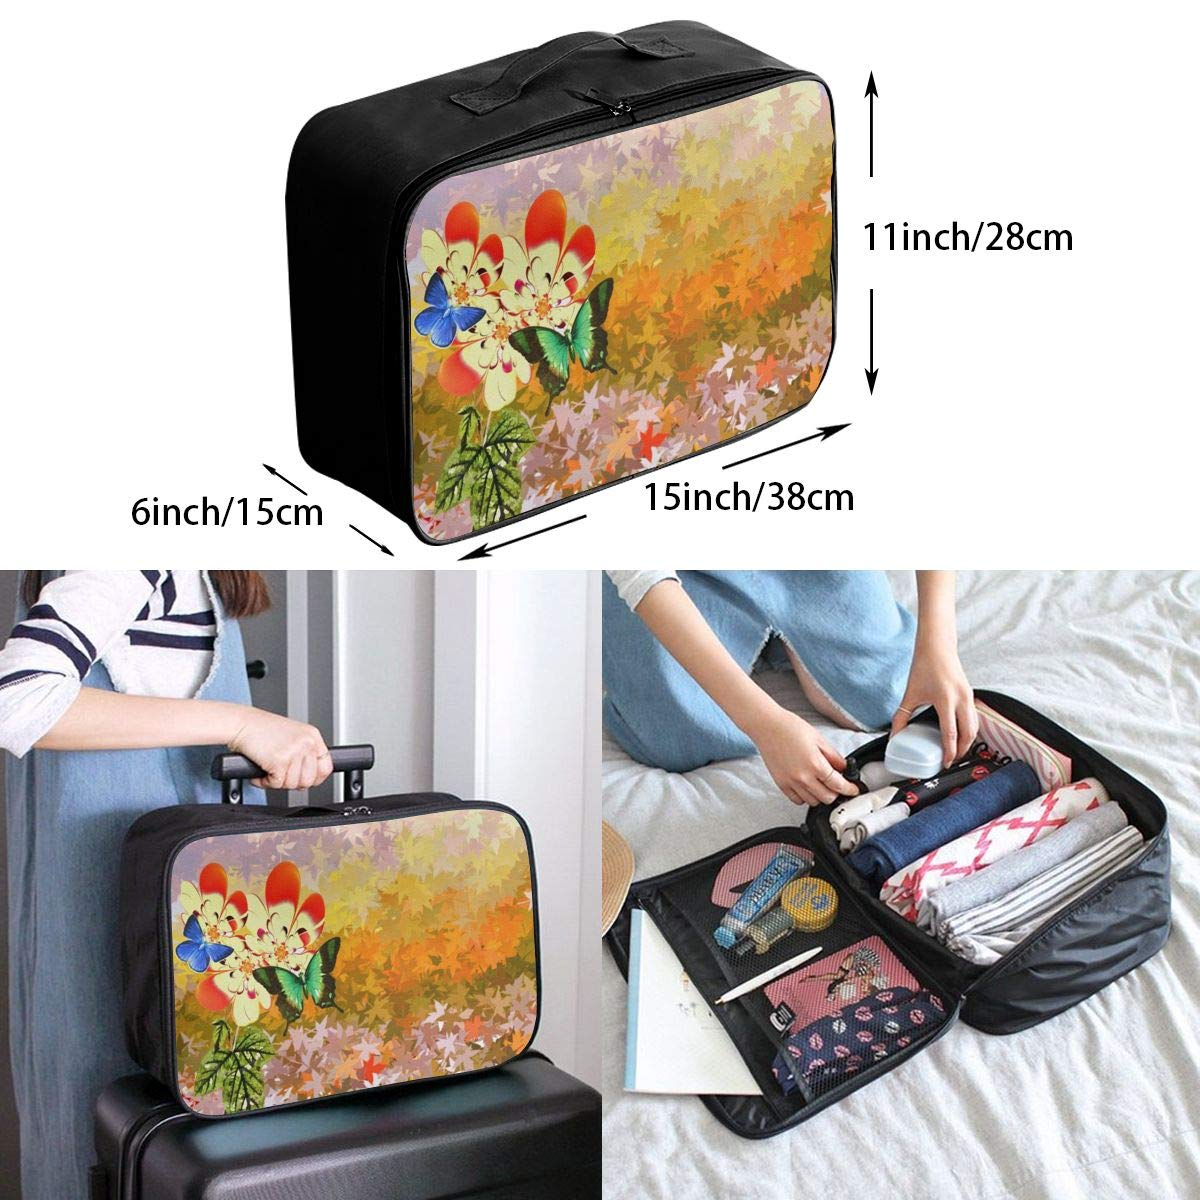 Flower Painting Art Butterfly Travel Lightweight Waterproof Foldable Storage Carry Luggage Large Capacity Portable Luggage Bag Duffel Bag